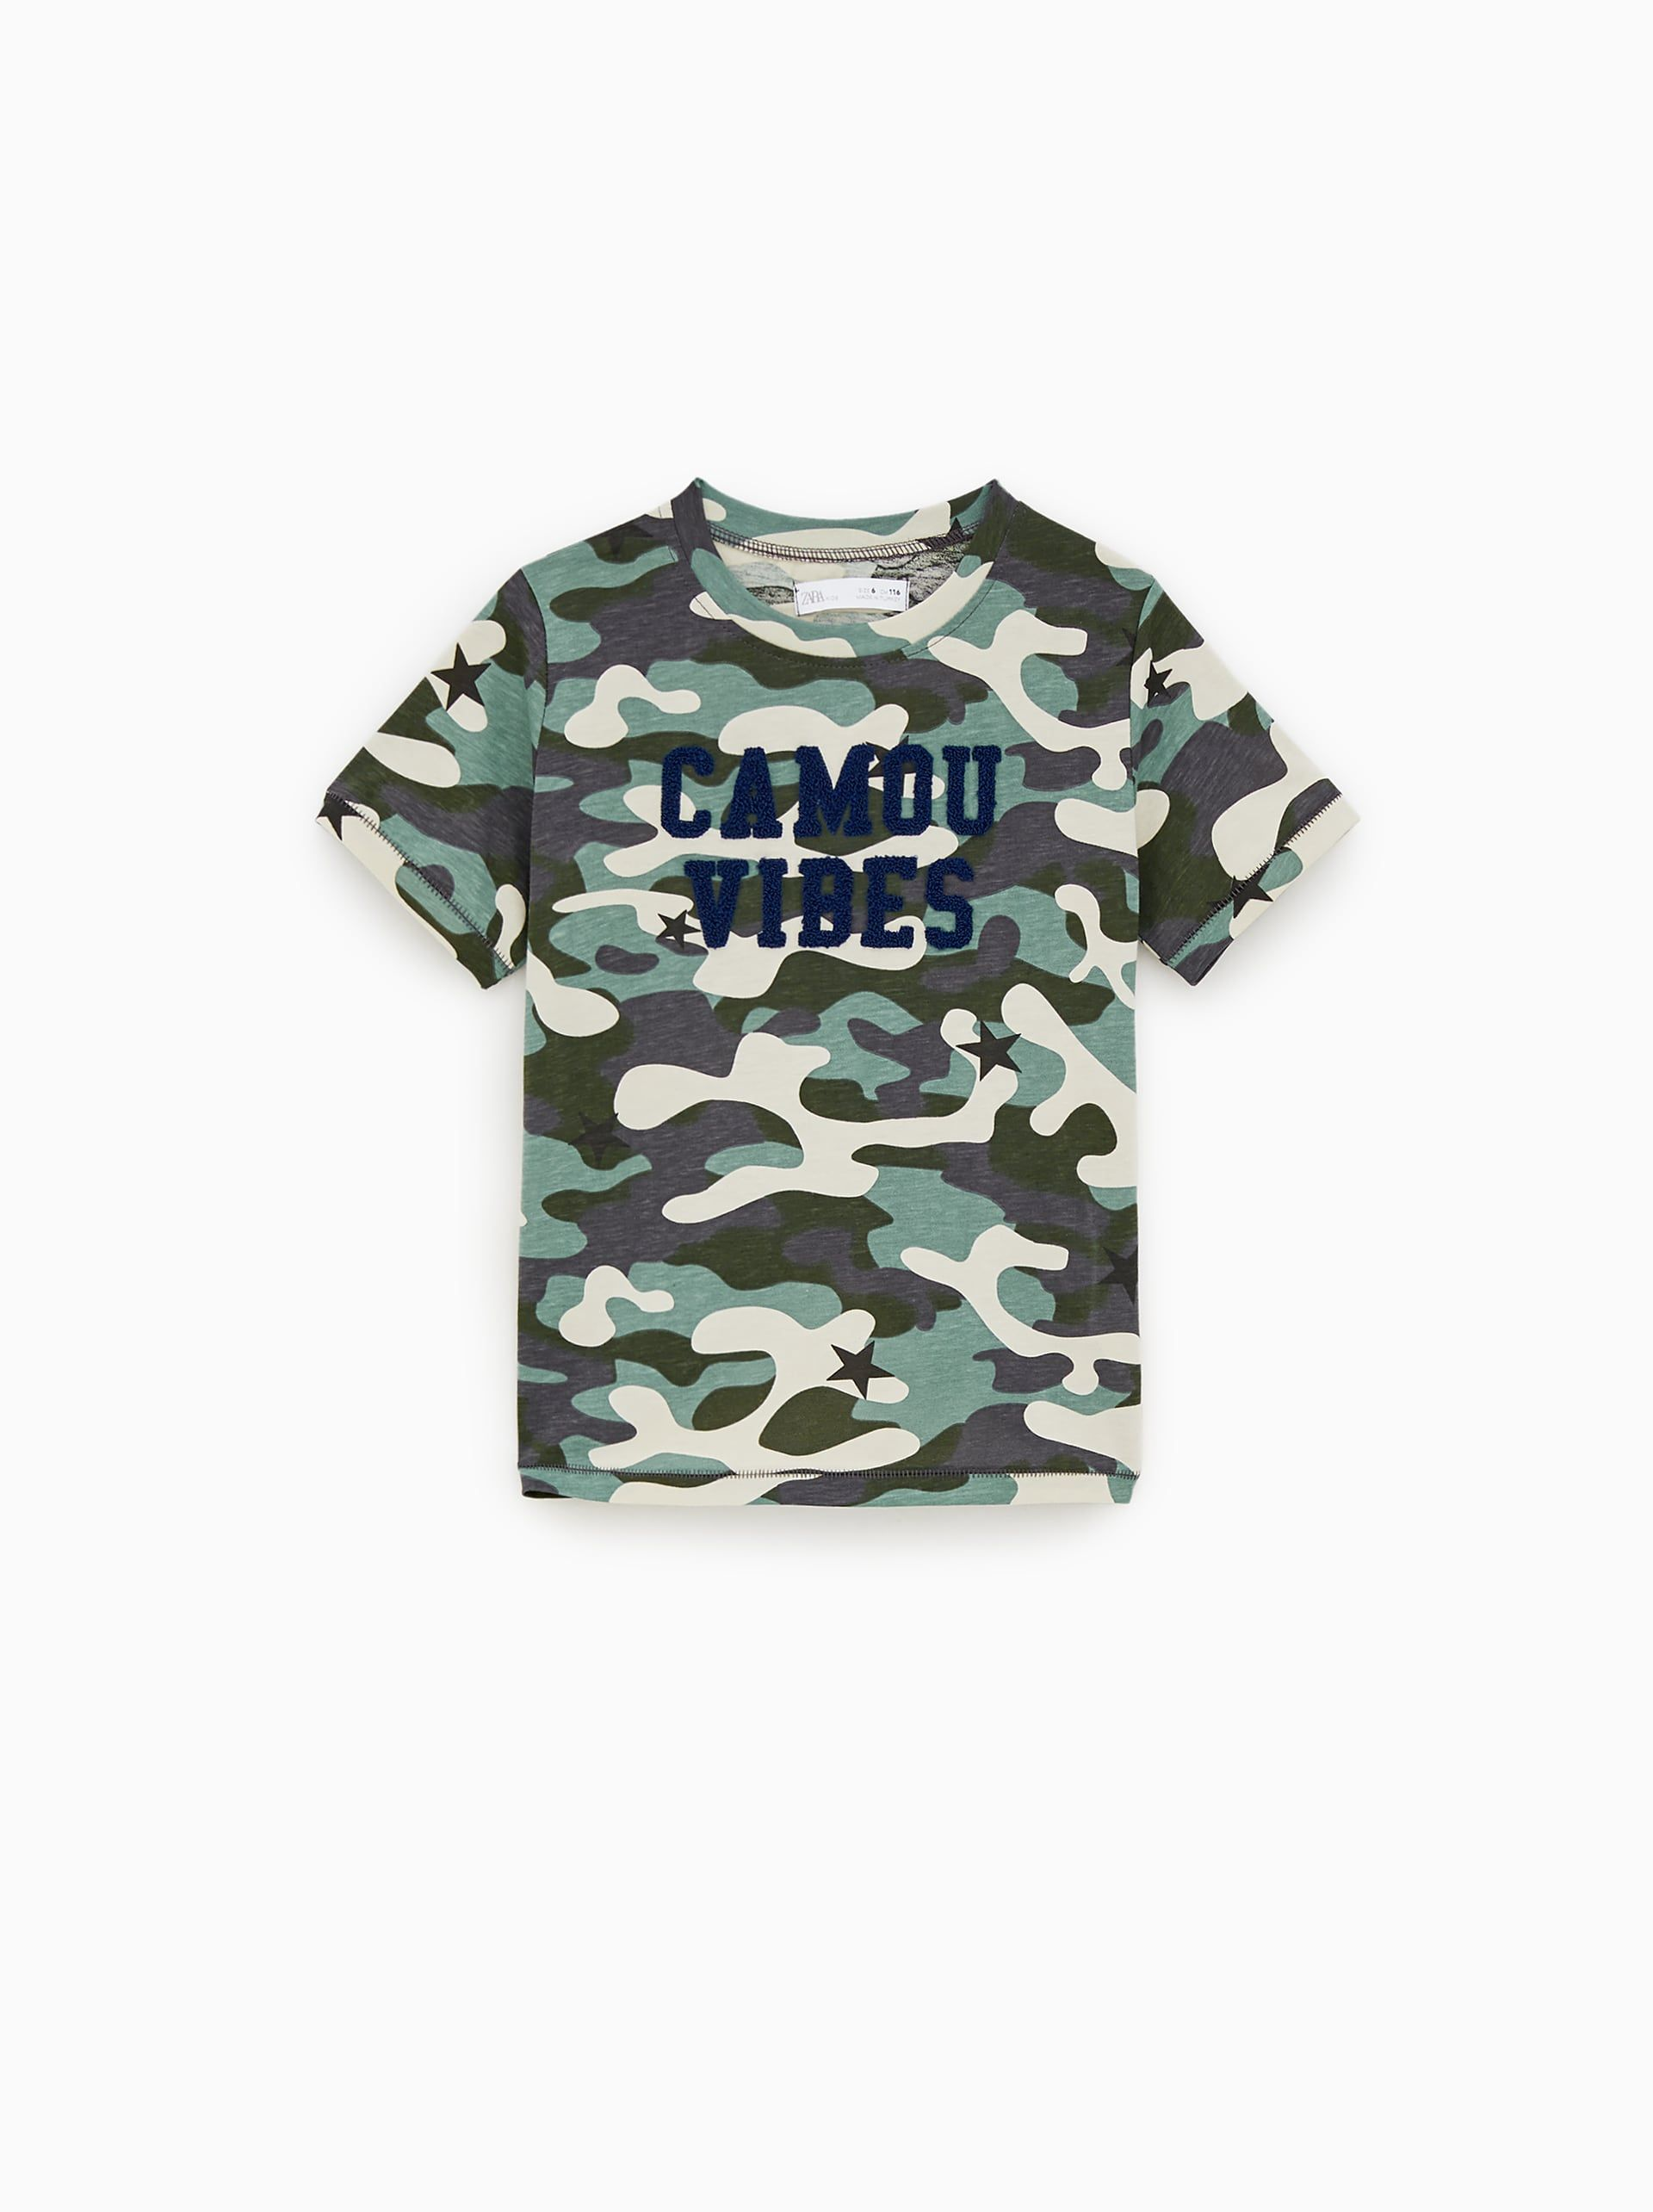 54a454d174 Camouflage and text print shirt | Big Boys Spring 2020 | Printed ...